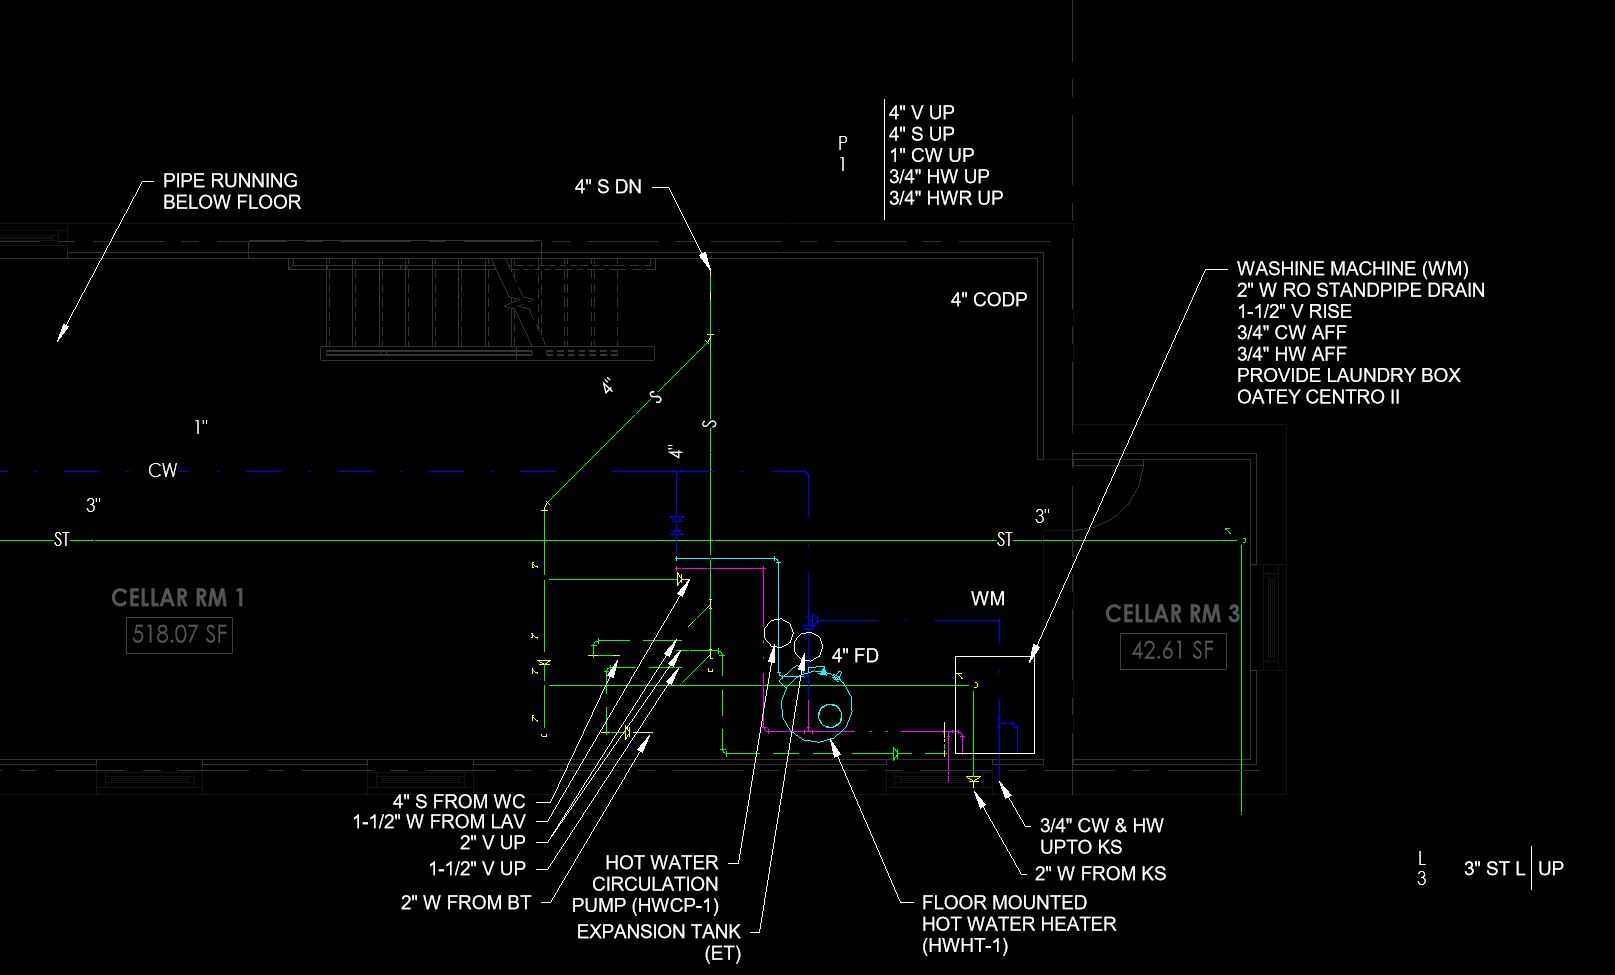 CAD file view